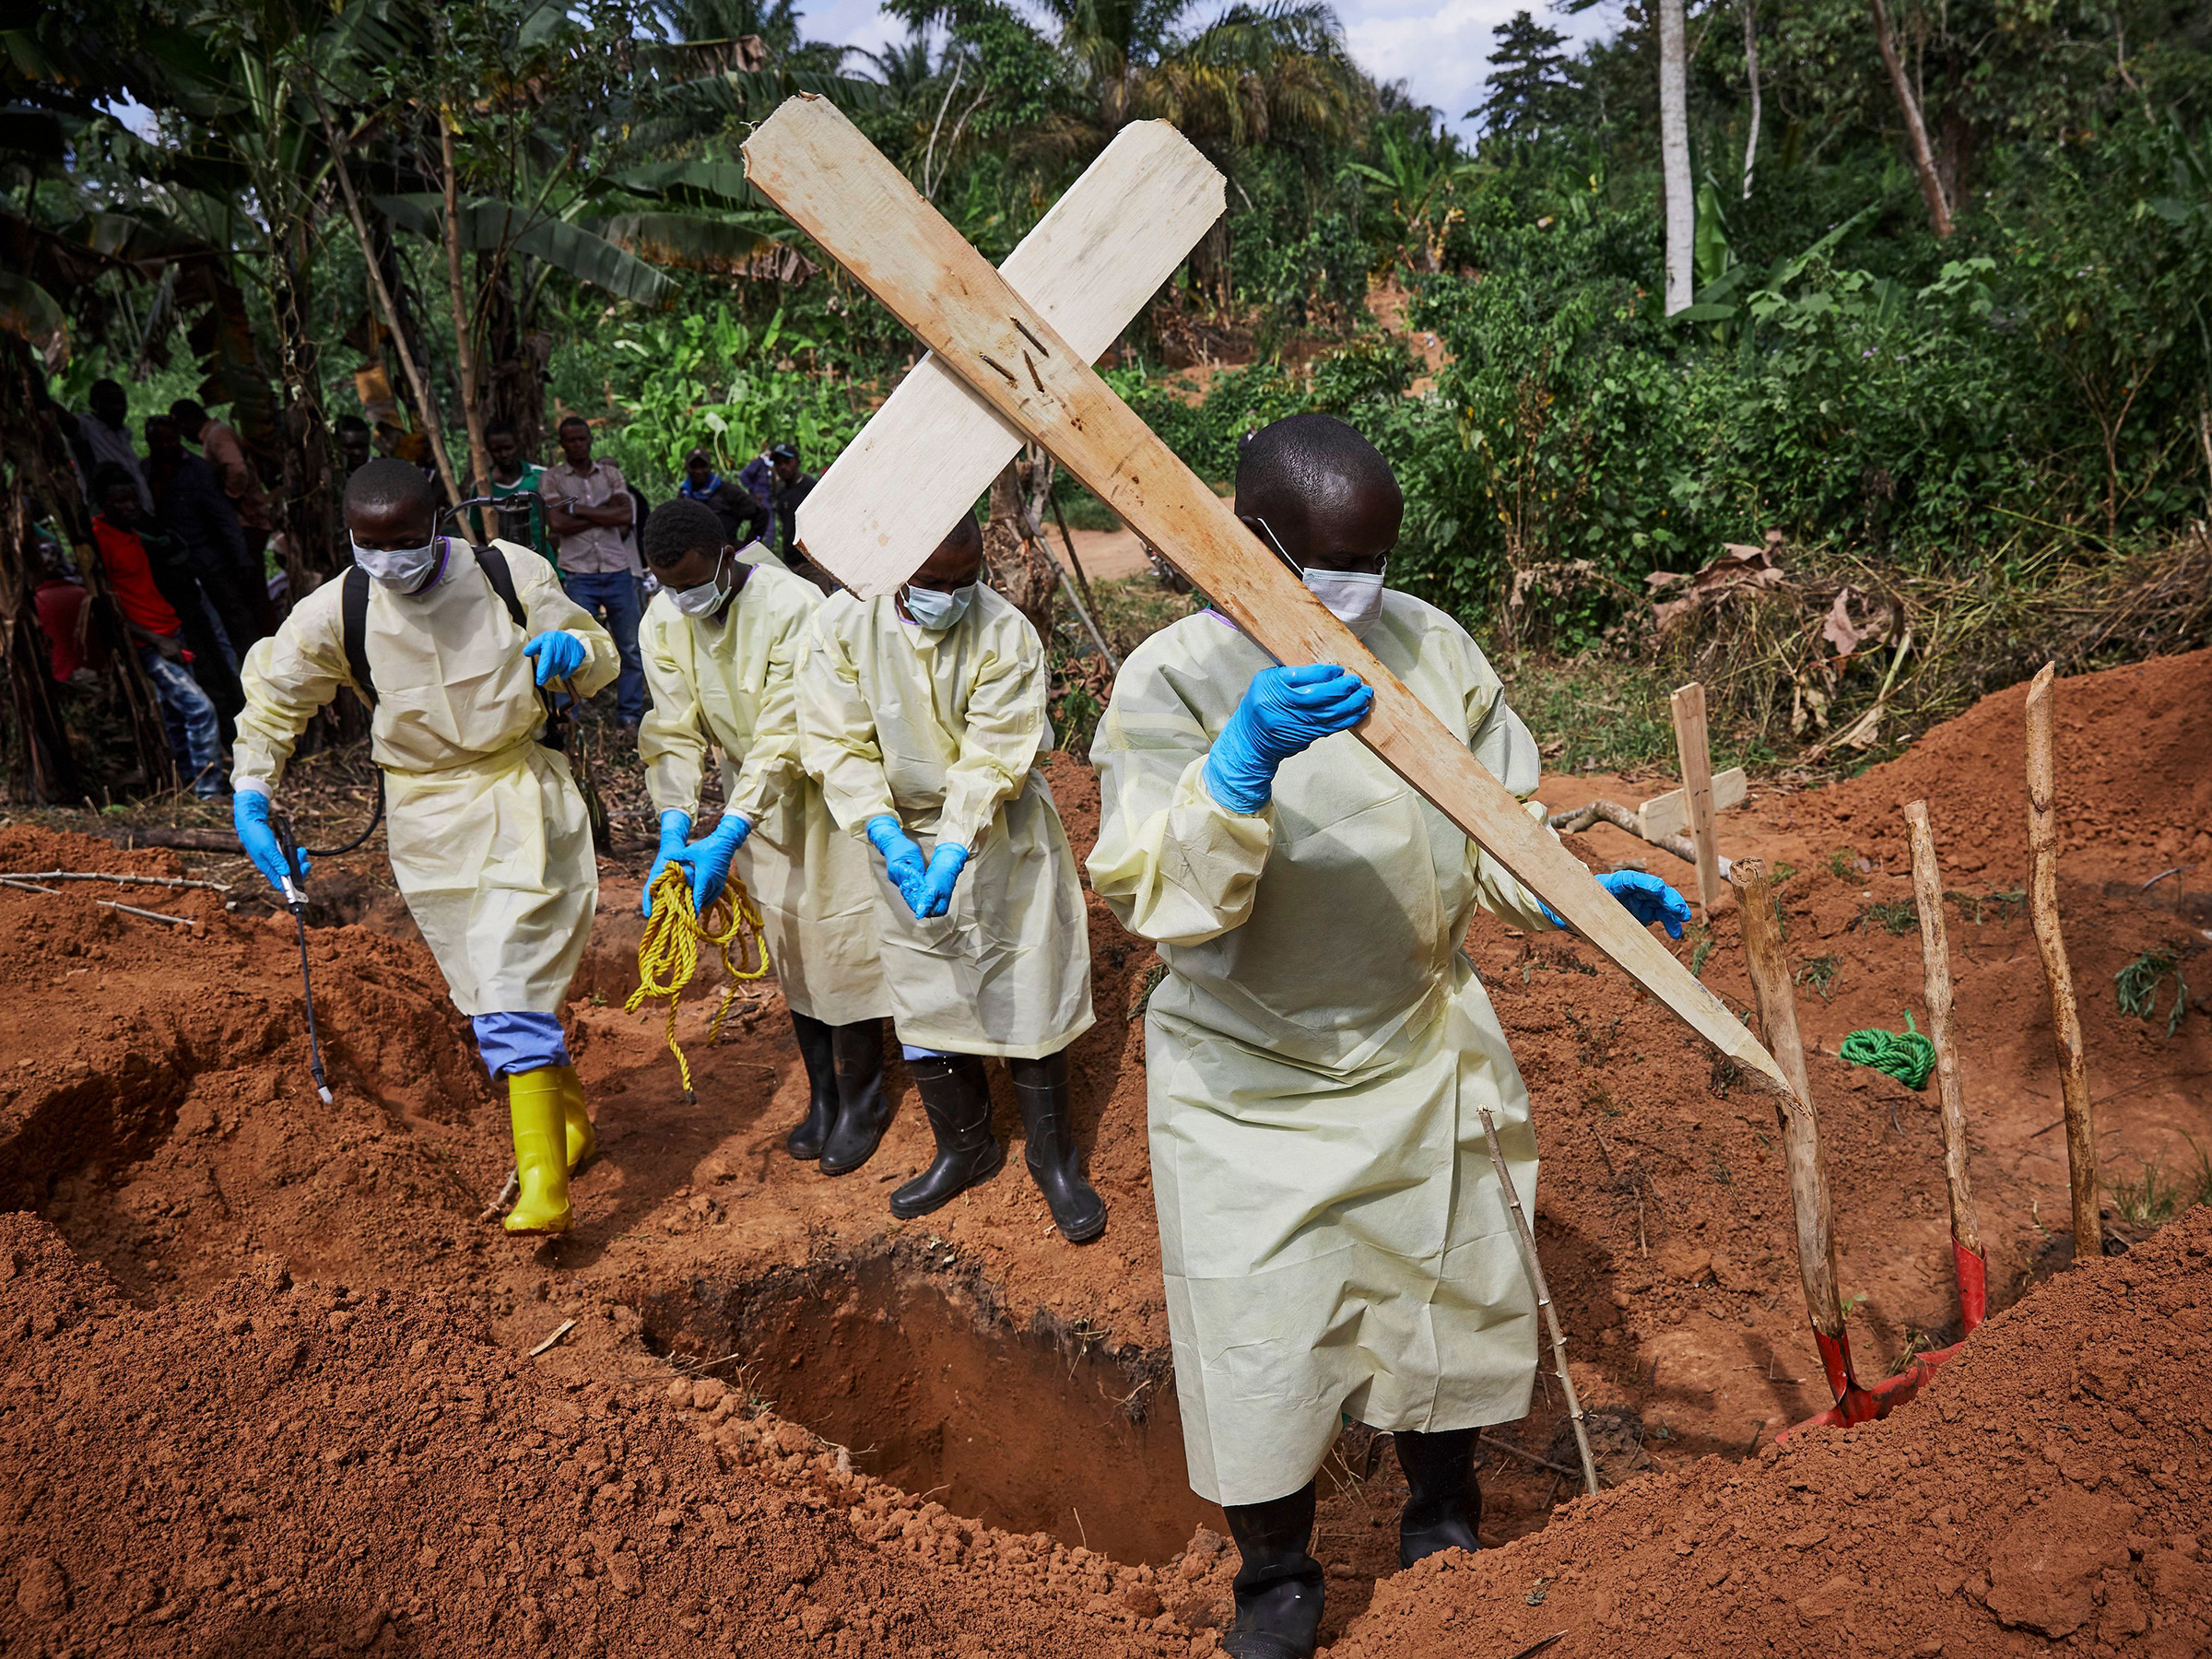 Health workers undertaking the burial of an eleven-month old child, Bunzi, in Beni, North Kivu province, Democratic Republic of the Congo, on May 5th 2019.